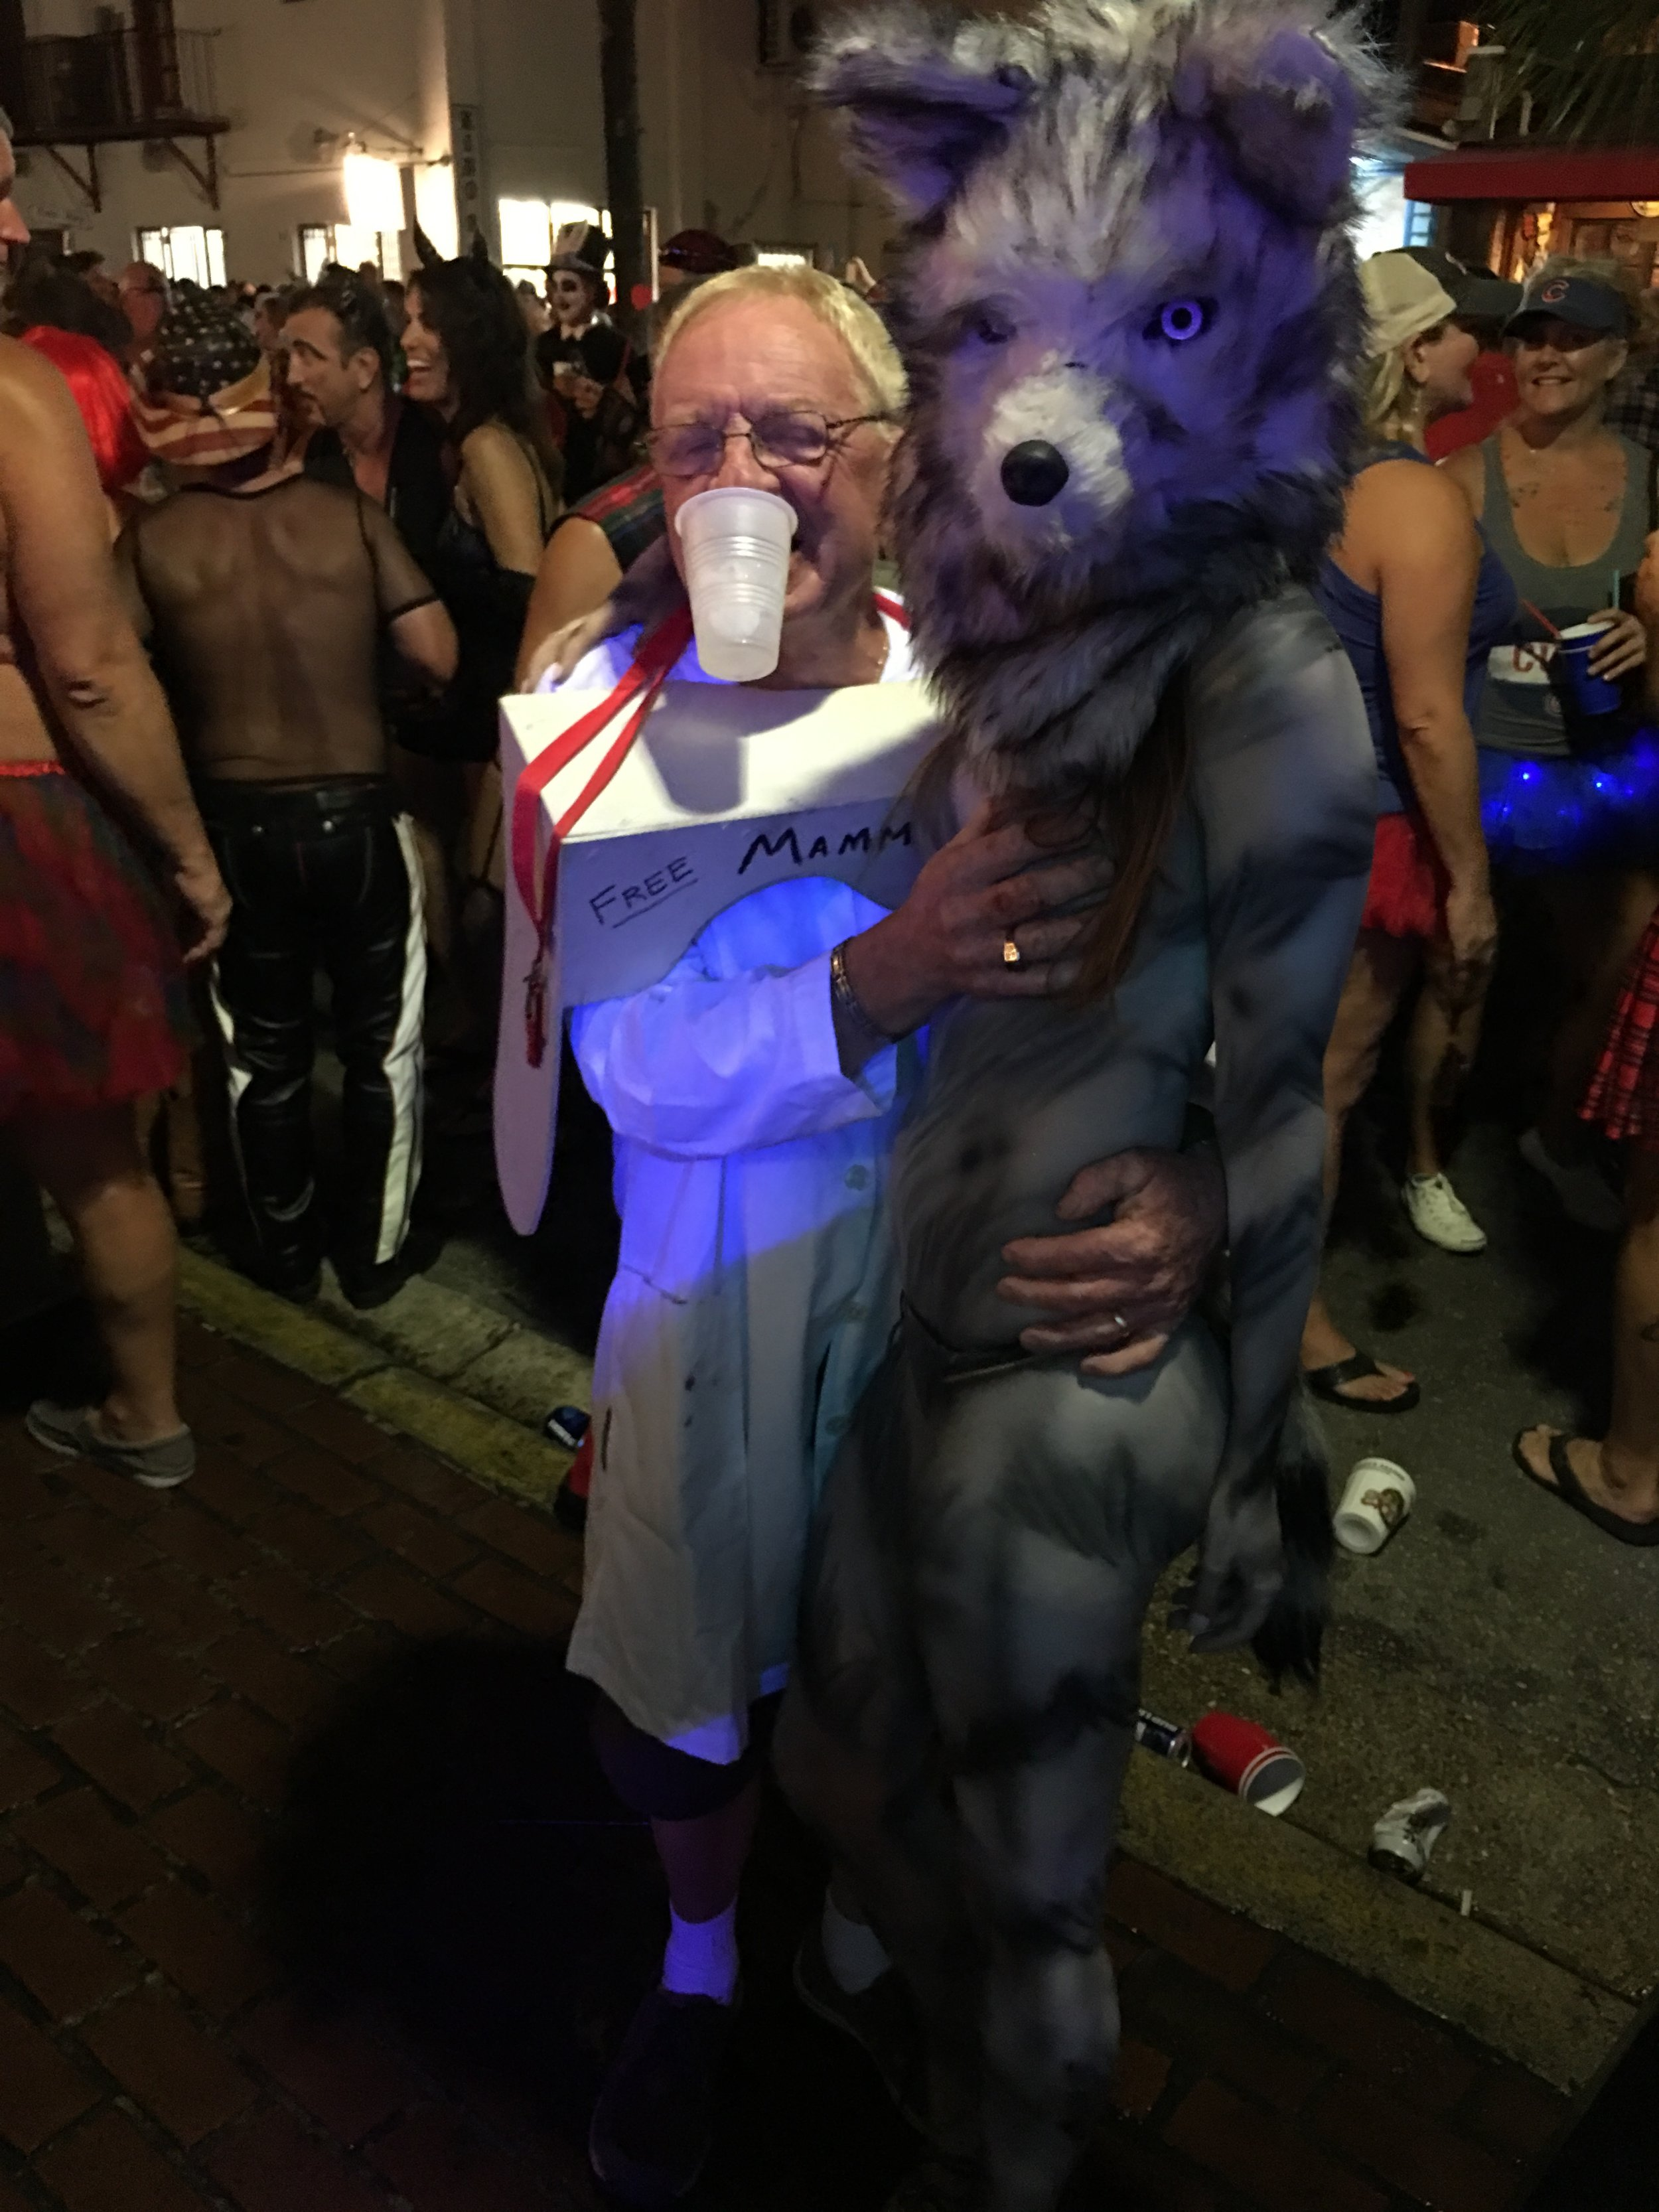 Alessandra Torre in wolf body paint at Fantasy Fest 2016 in Key West - nude with Free Mammograms costume man